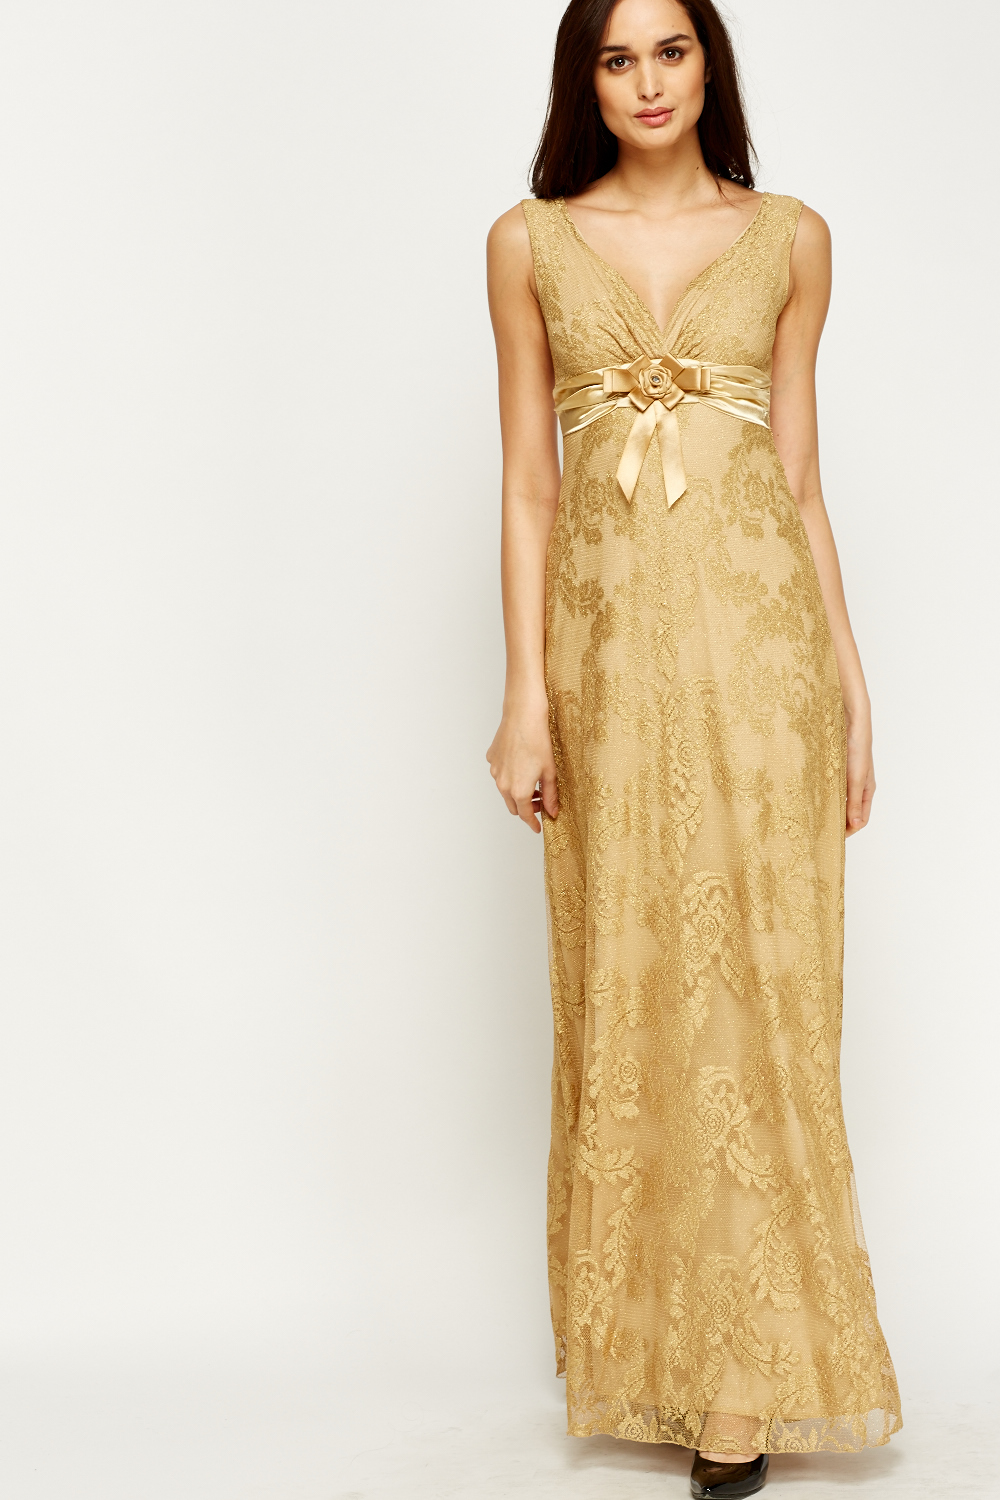 Metallic Gold Maxi Dress - Just £5